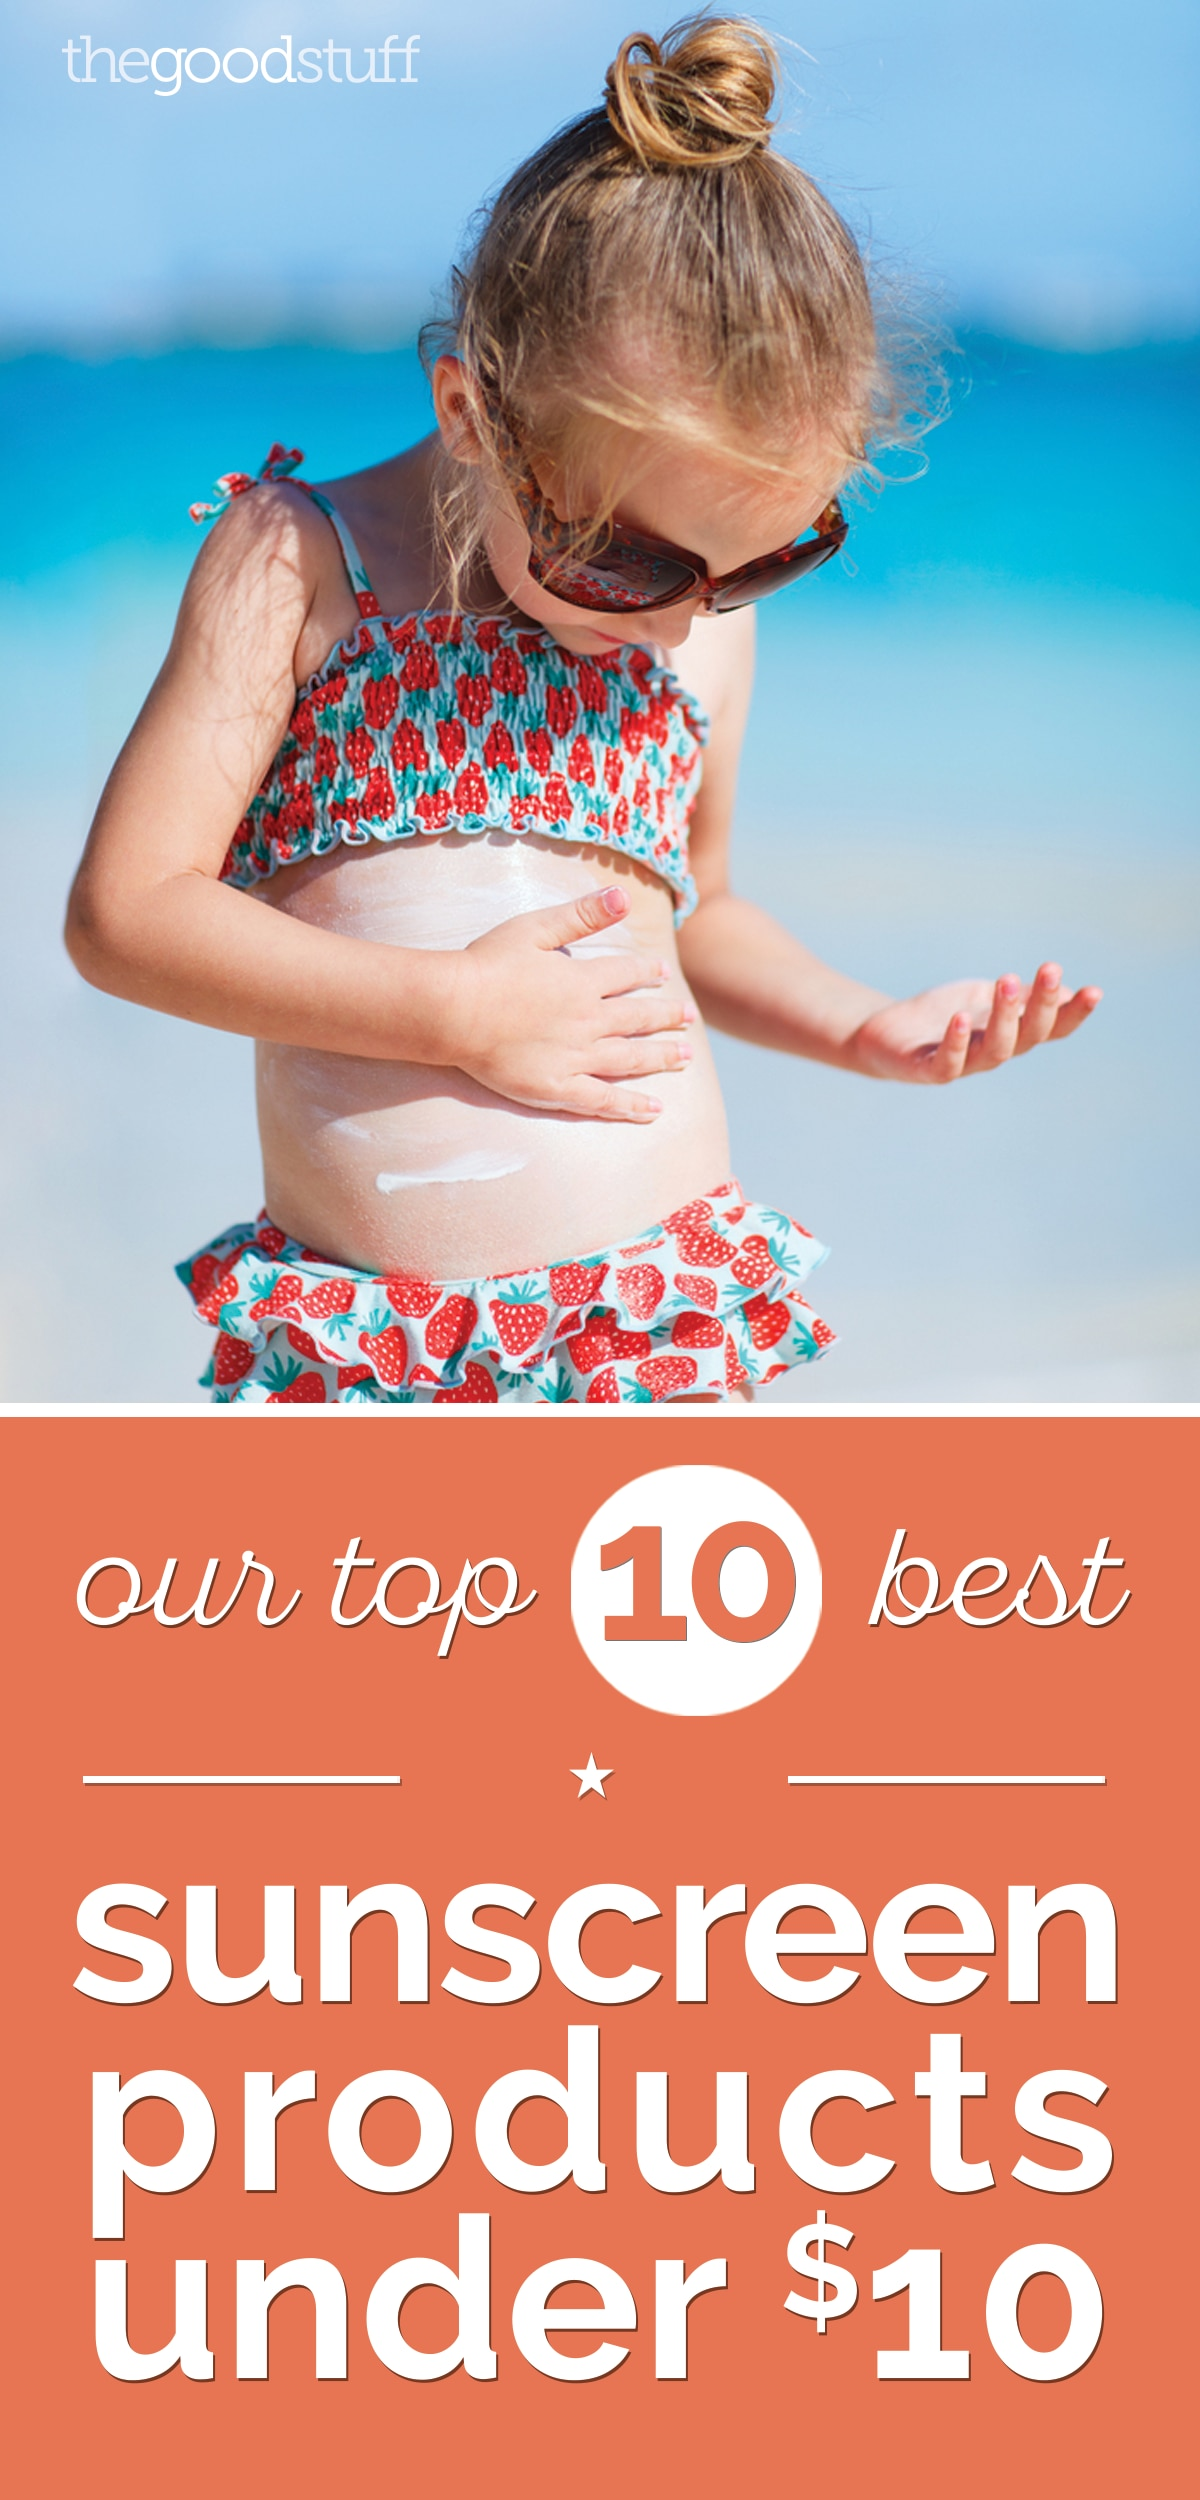 Our Top 10 Best Sunscreen Products Under $10 | thegoodstuff